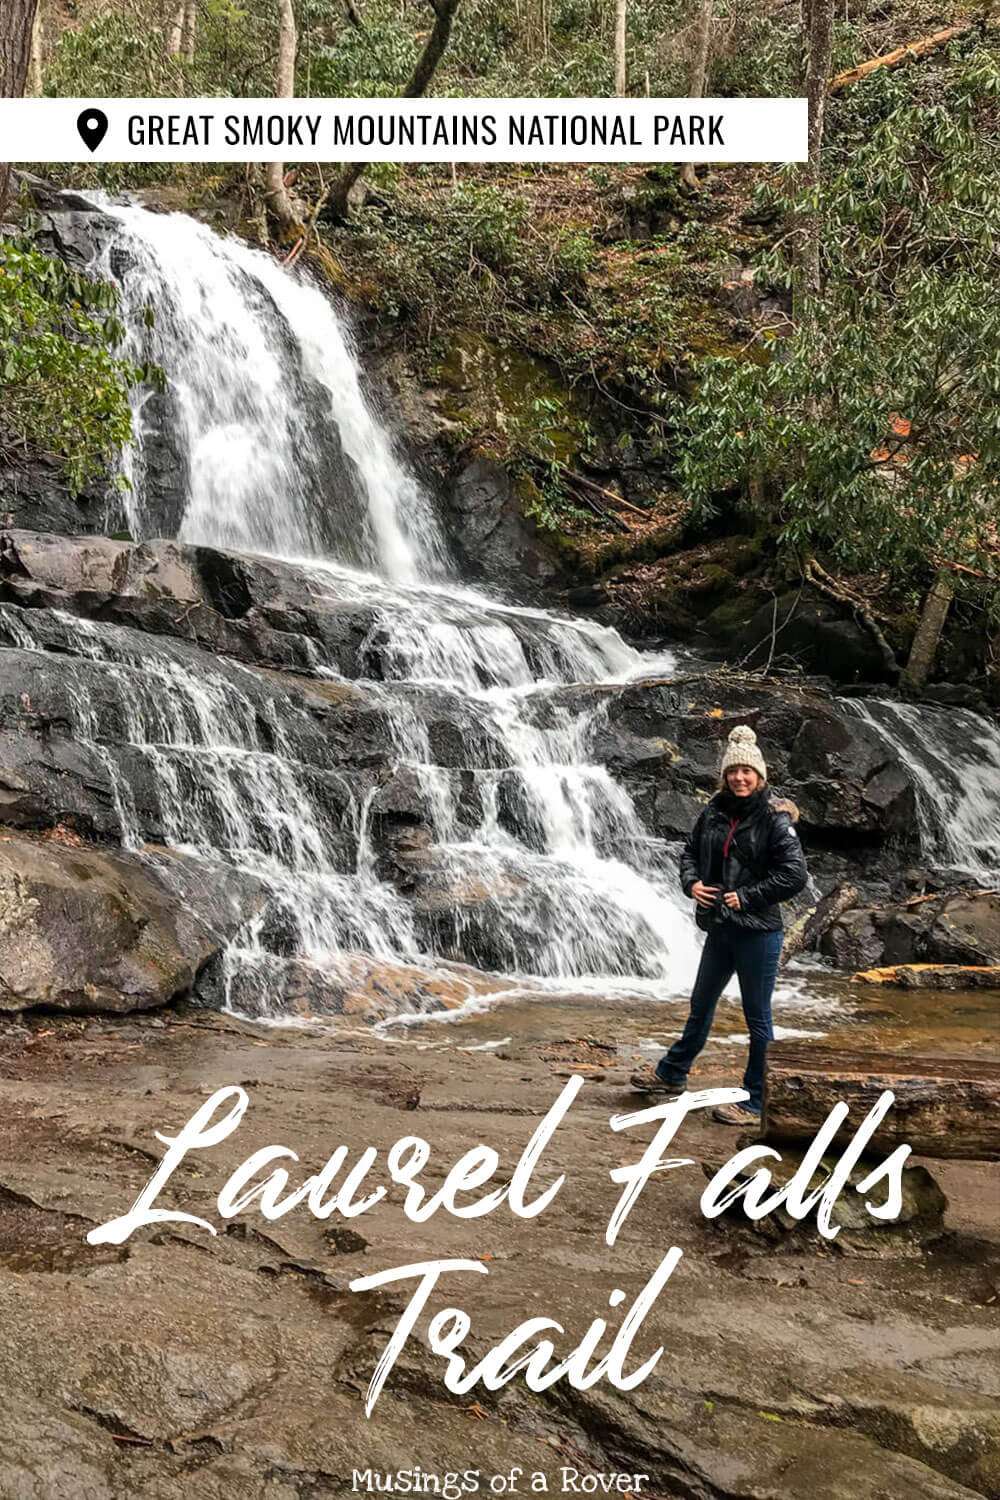 Want to see an 80 foot tall waterfall during your visit to the Great Smoky Mountains National Park? Then add the easy, paved, 2.6 mile Laurel Falls Trail to your trip! It's on the way to Cades Cove and is one of the best things to do in the Smokies. It's also one of the most popular hikes. You won't want to miss it!